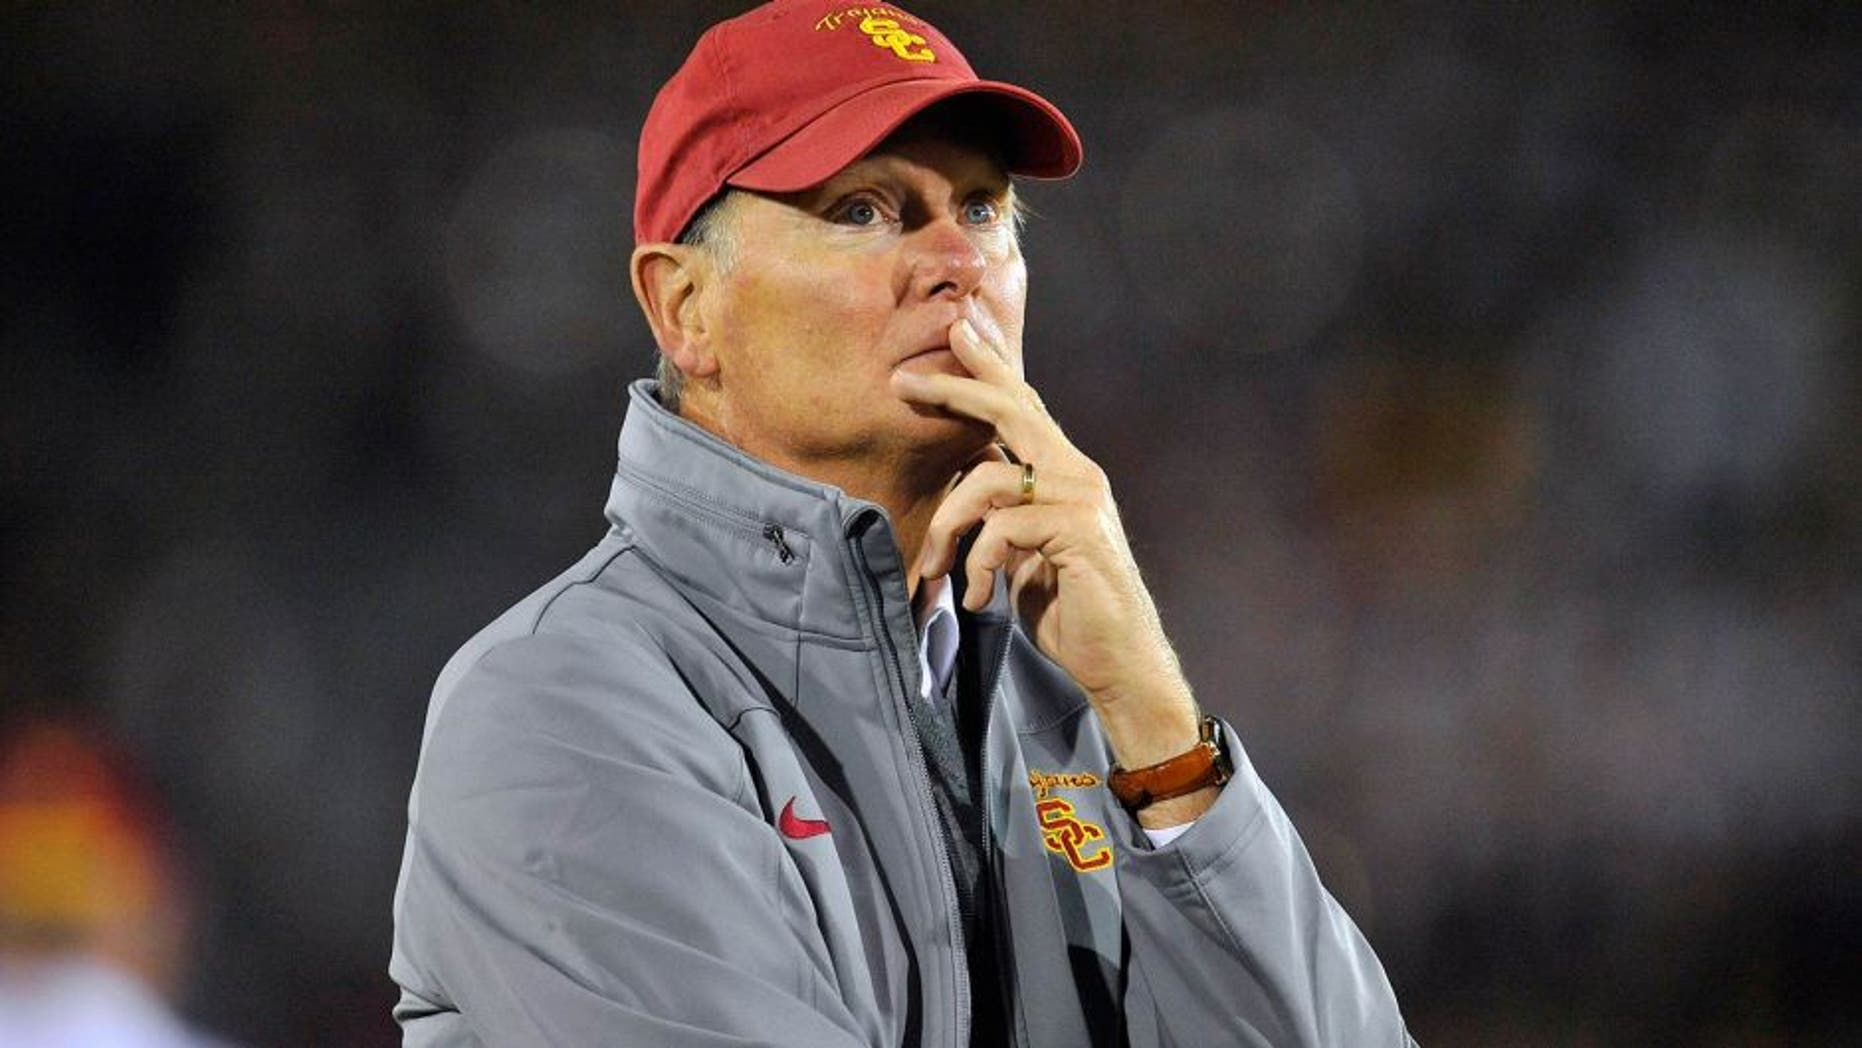 October 10, 2013; Los Angeles, CA, USA; Southern California Trojans athletic director Pat Haden watches game action against the Arizona Wildcats during the second half at the Los Angeles Memorial Coliseum. Mandatory Credit: Gary A. Vasquez-USA TODAY Sports